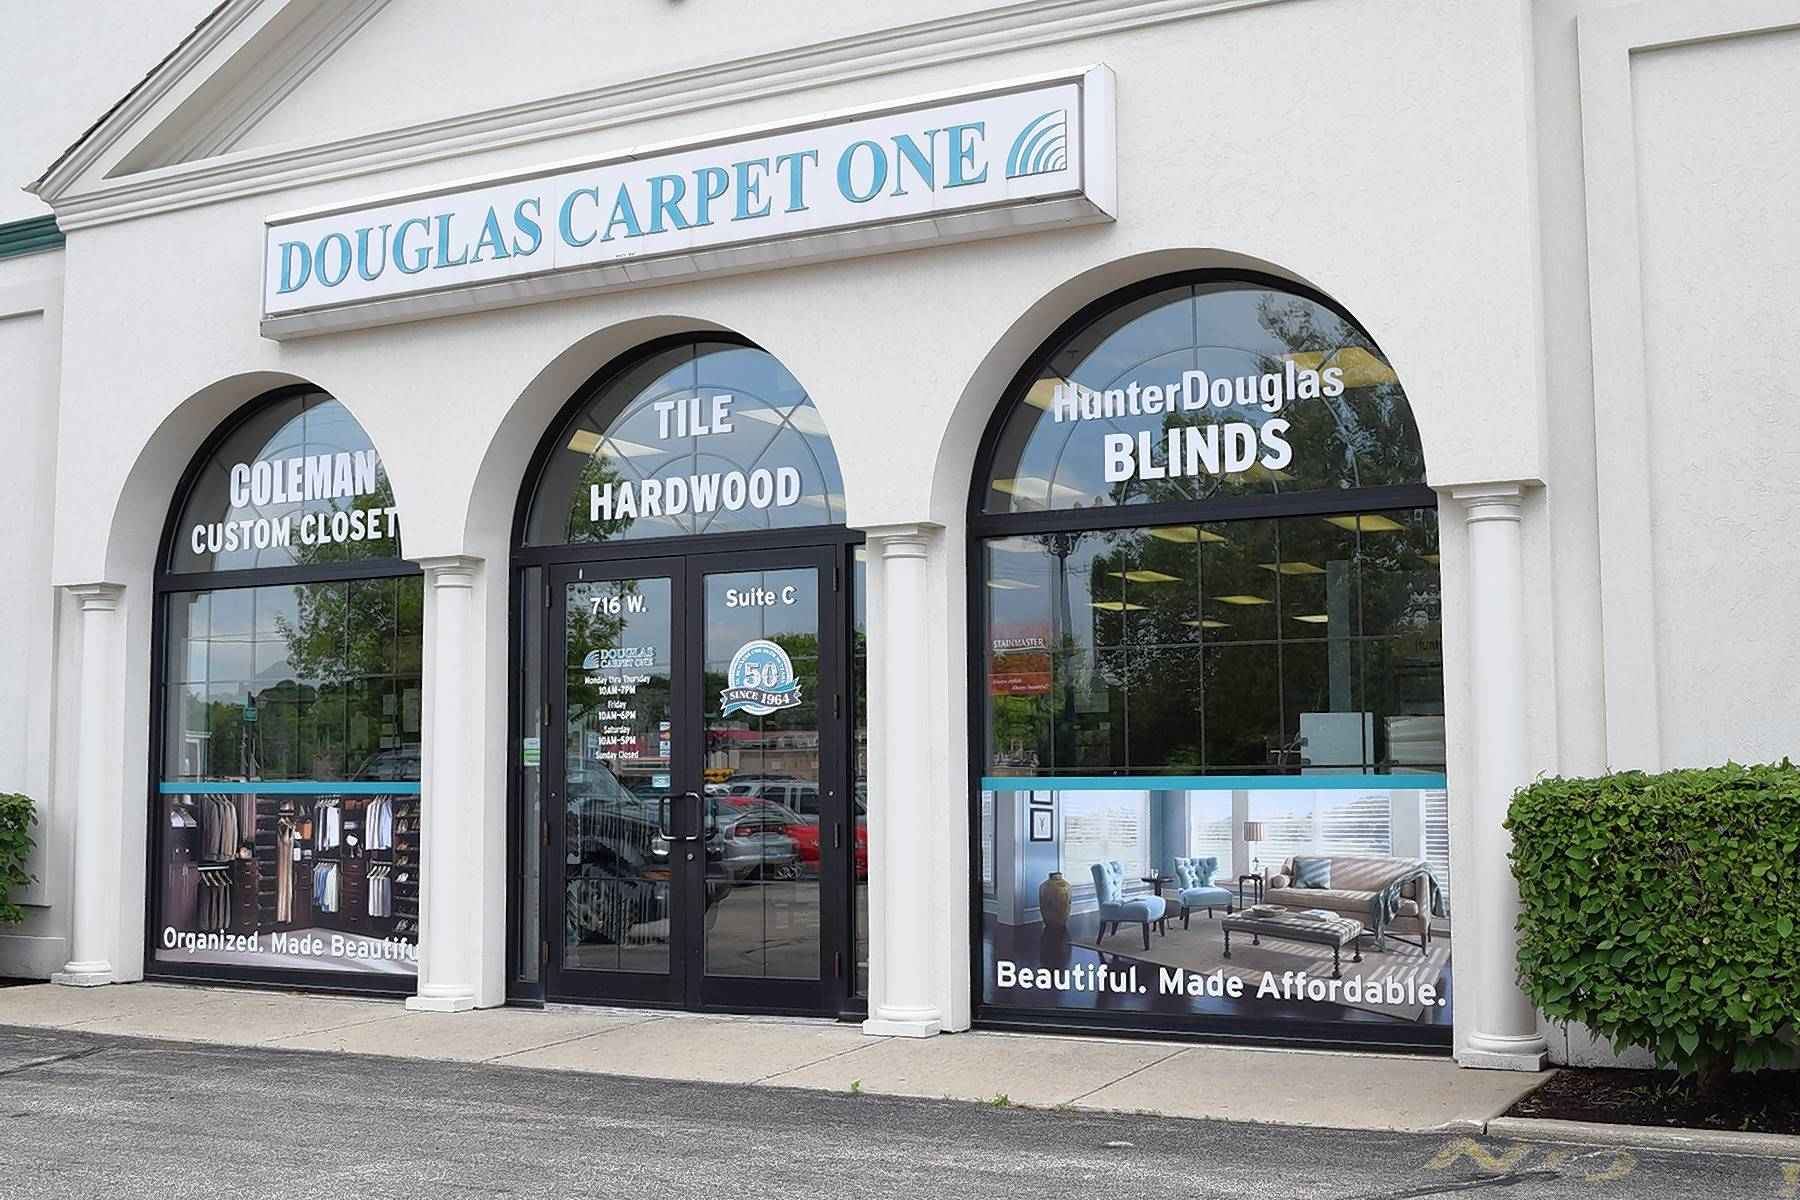 Douglas Carpet One Flooring and Home has added premium blinds and closet makeover products to its showrooms in North Aurora and Geneva.